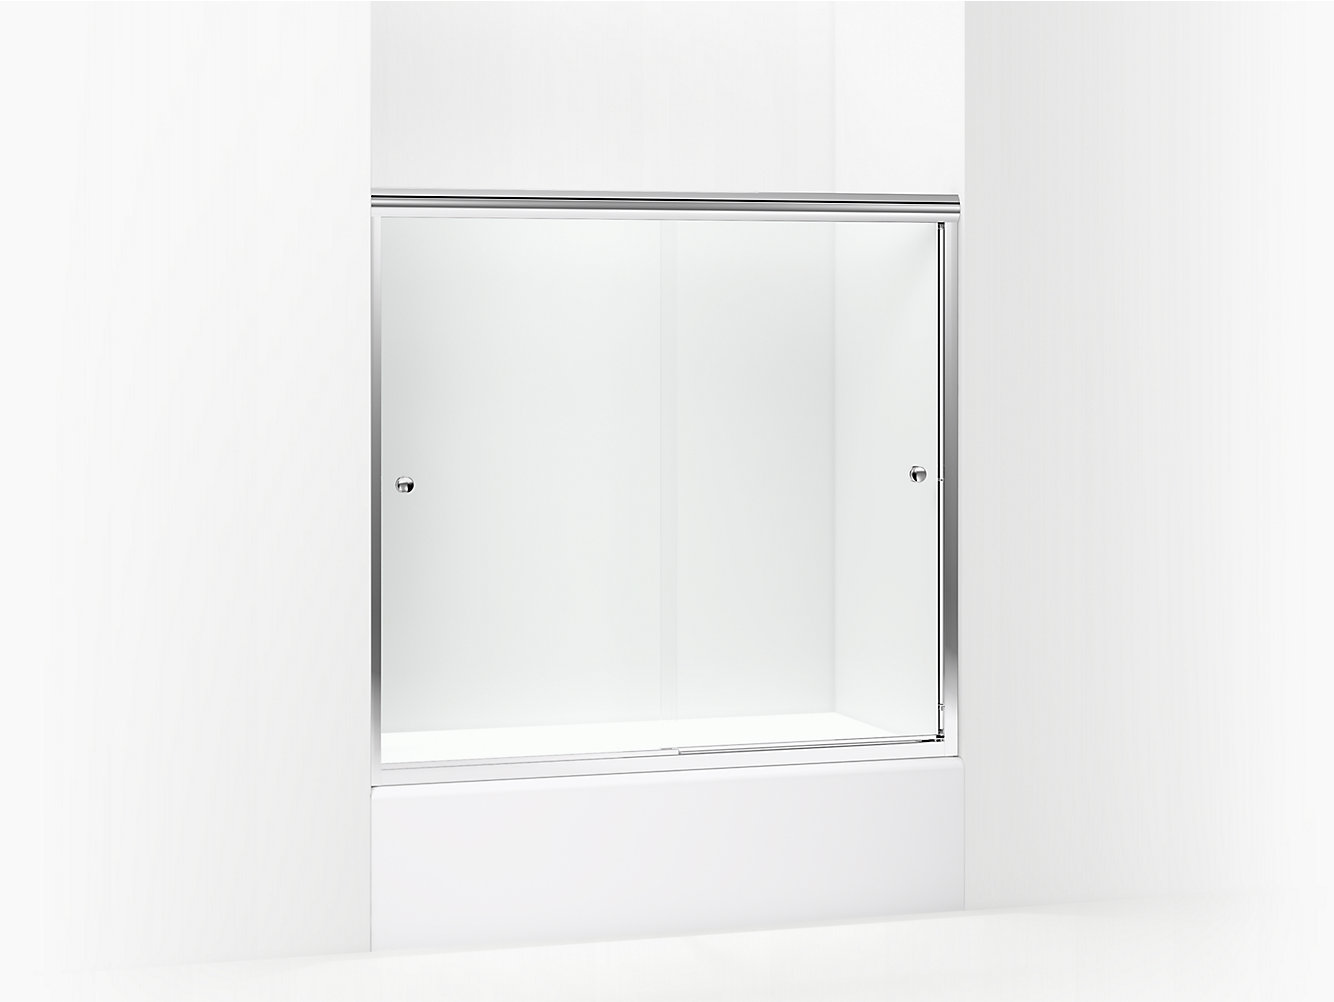 Finesse Frameless Sliding Door With Knob Height 55 12 Max